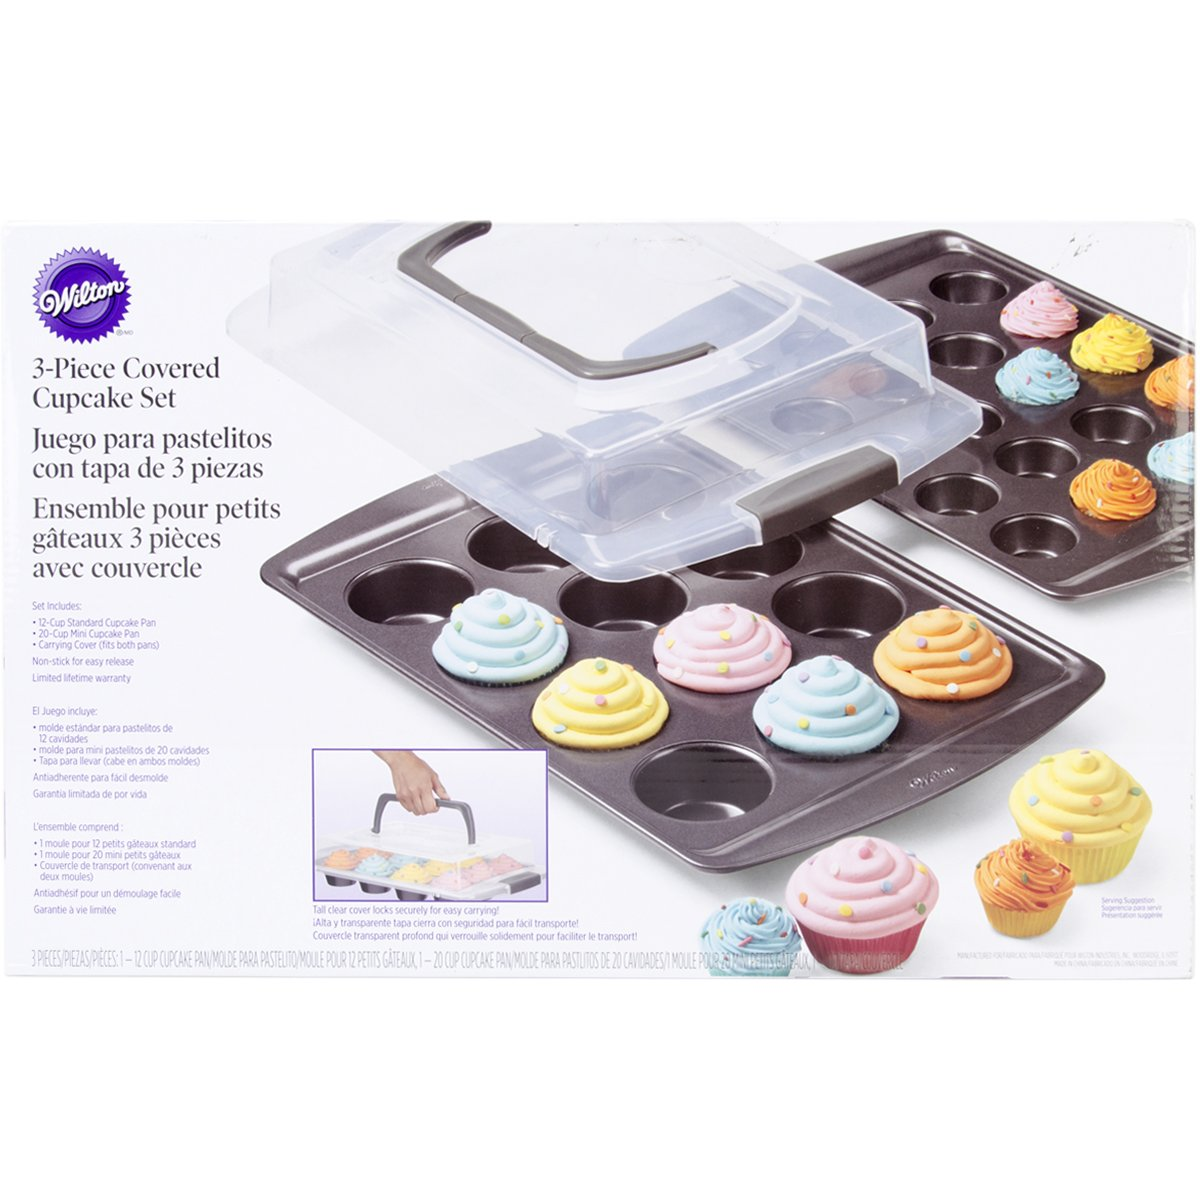 Amazon.com: Wilton 2105-0121 3-Piece Nonstick Covered Cupcake Set: Muffin Pans: Kitchen & Dining